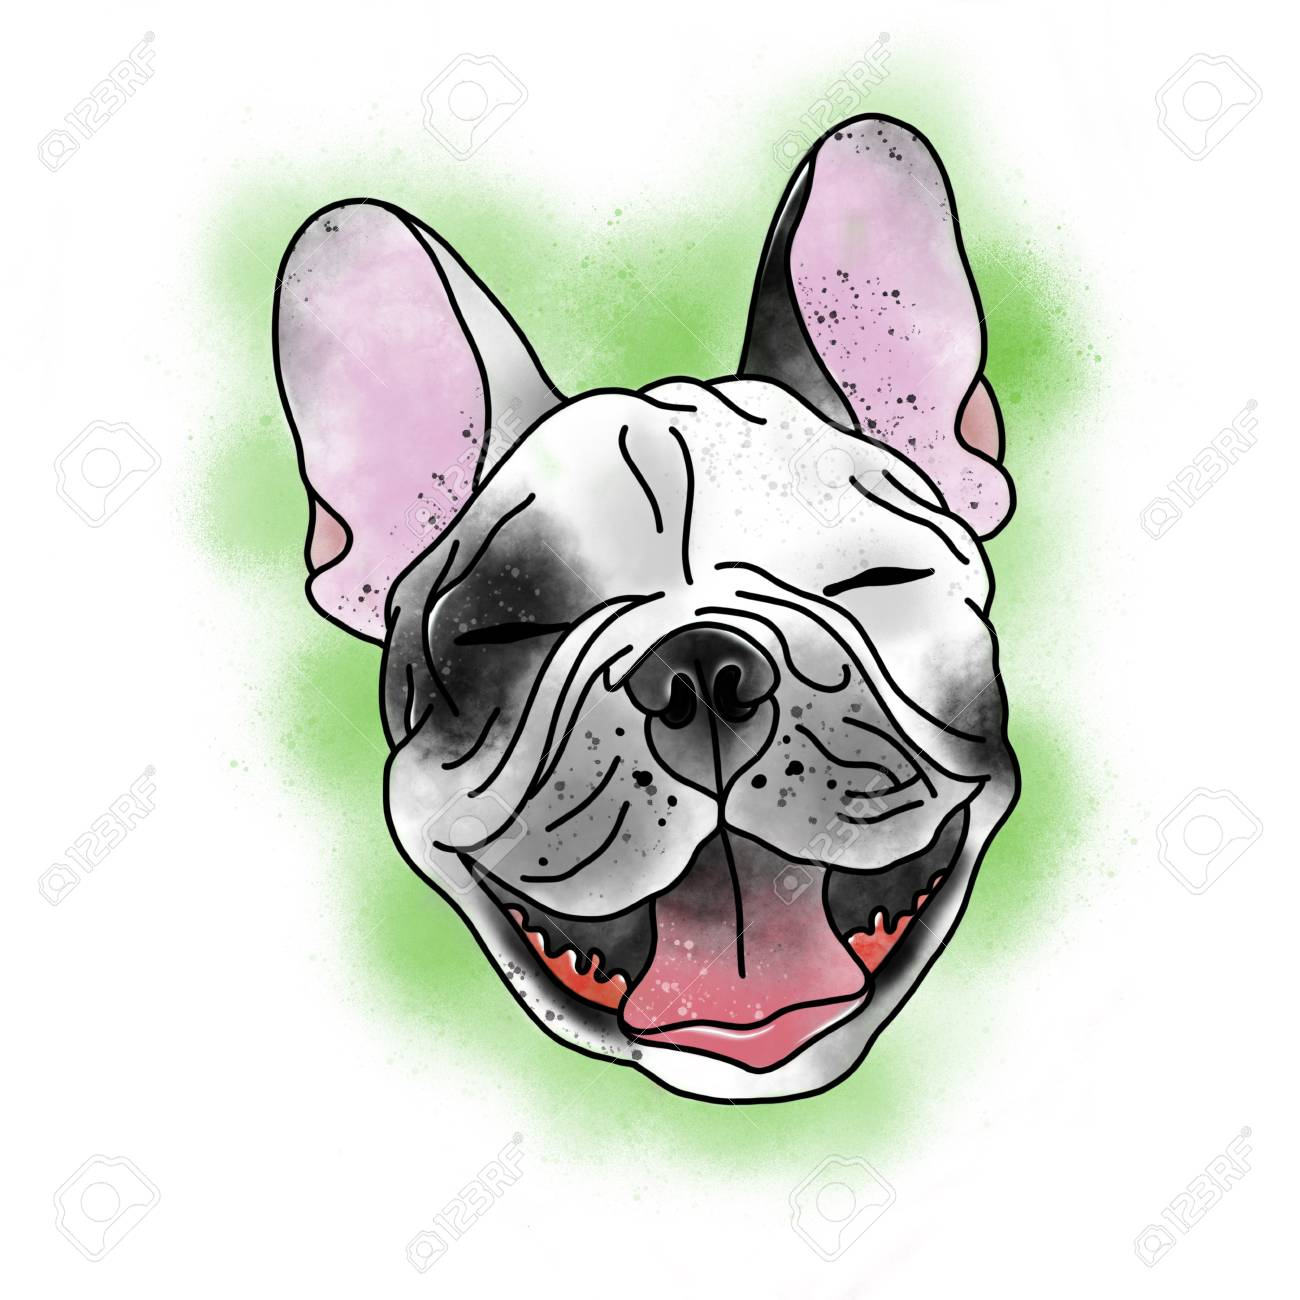 Stylized dog. Tattoo design. Cartoon illustration, hand drawn style. Banque d'images - 87599734